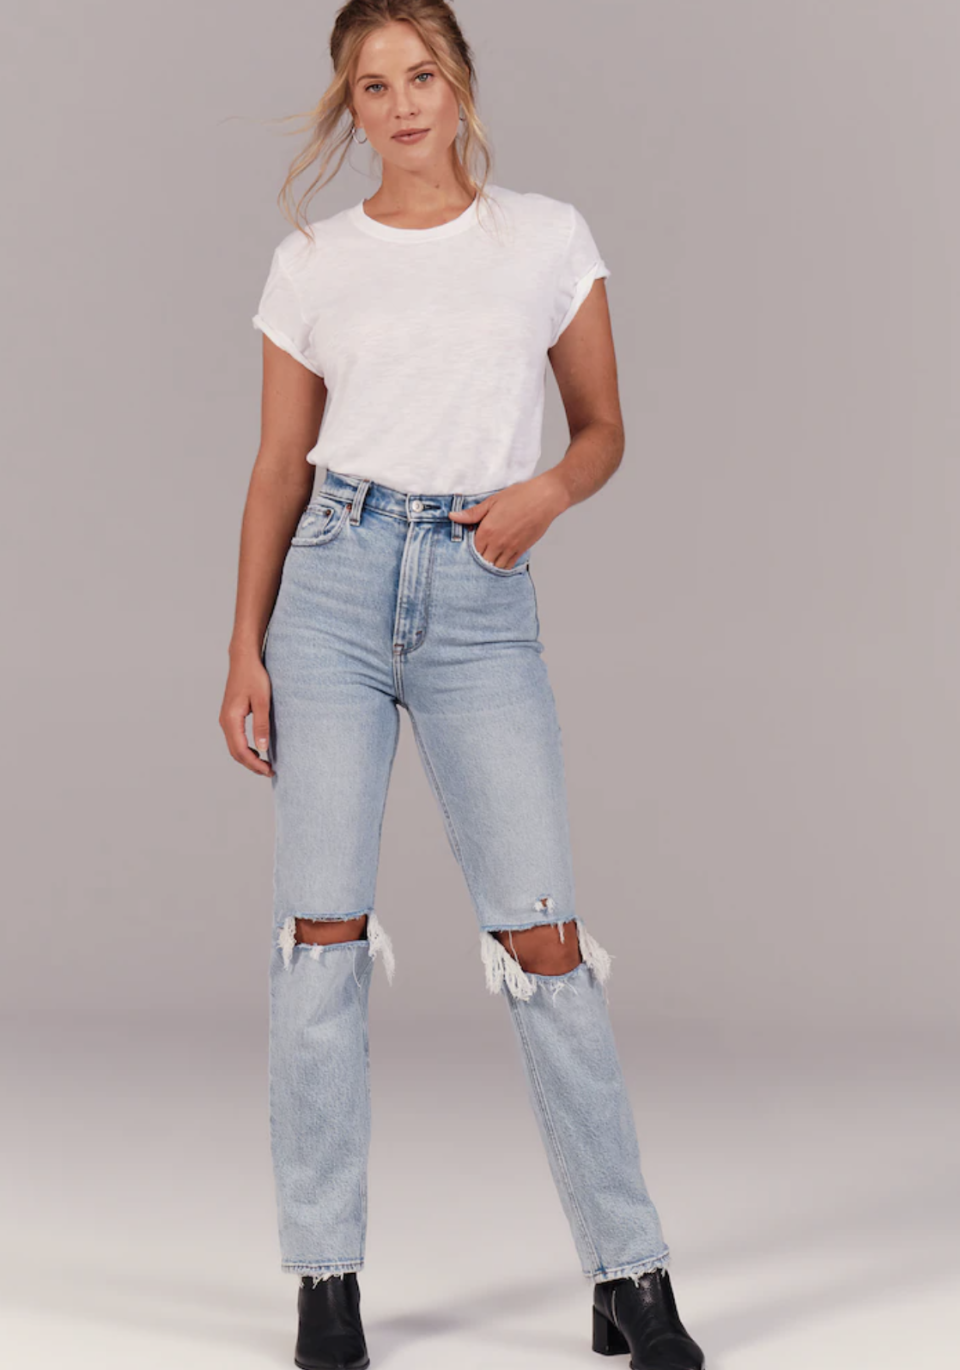 Abercrombie's 90s Ultra Rise Straight Jeans